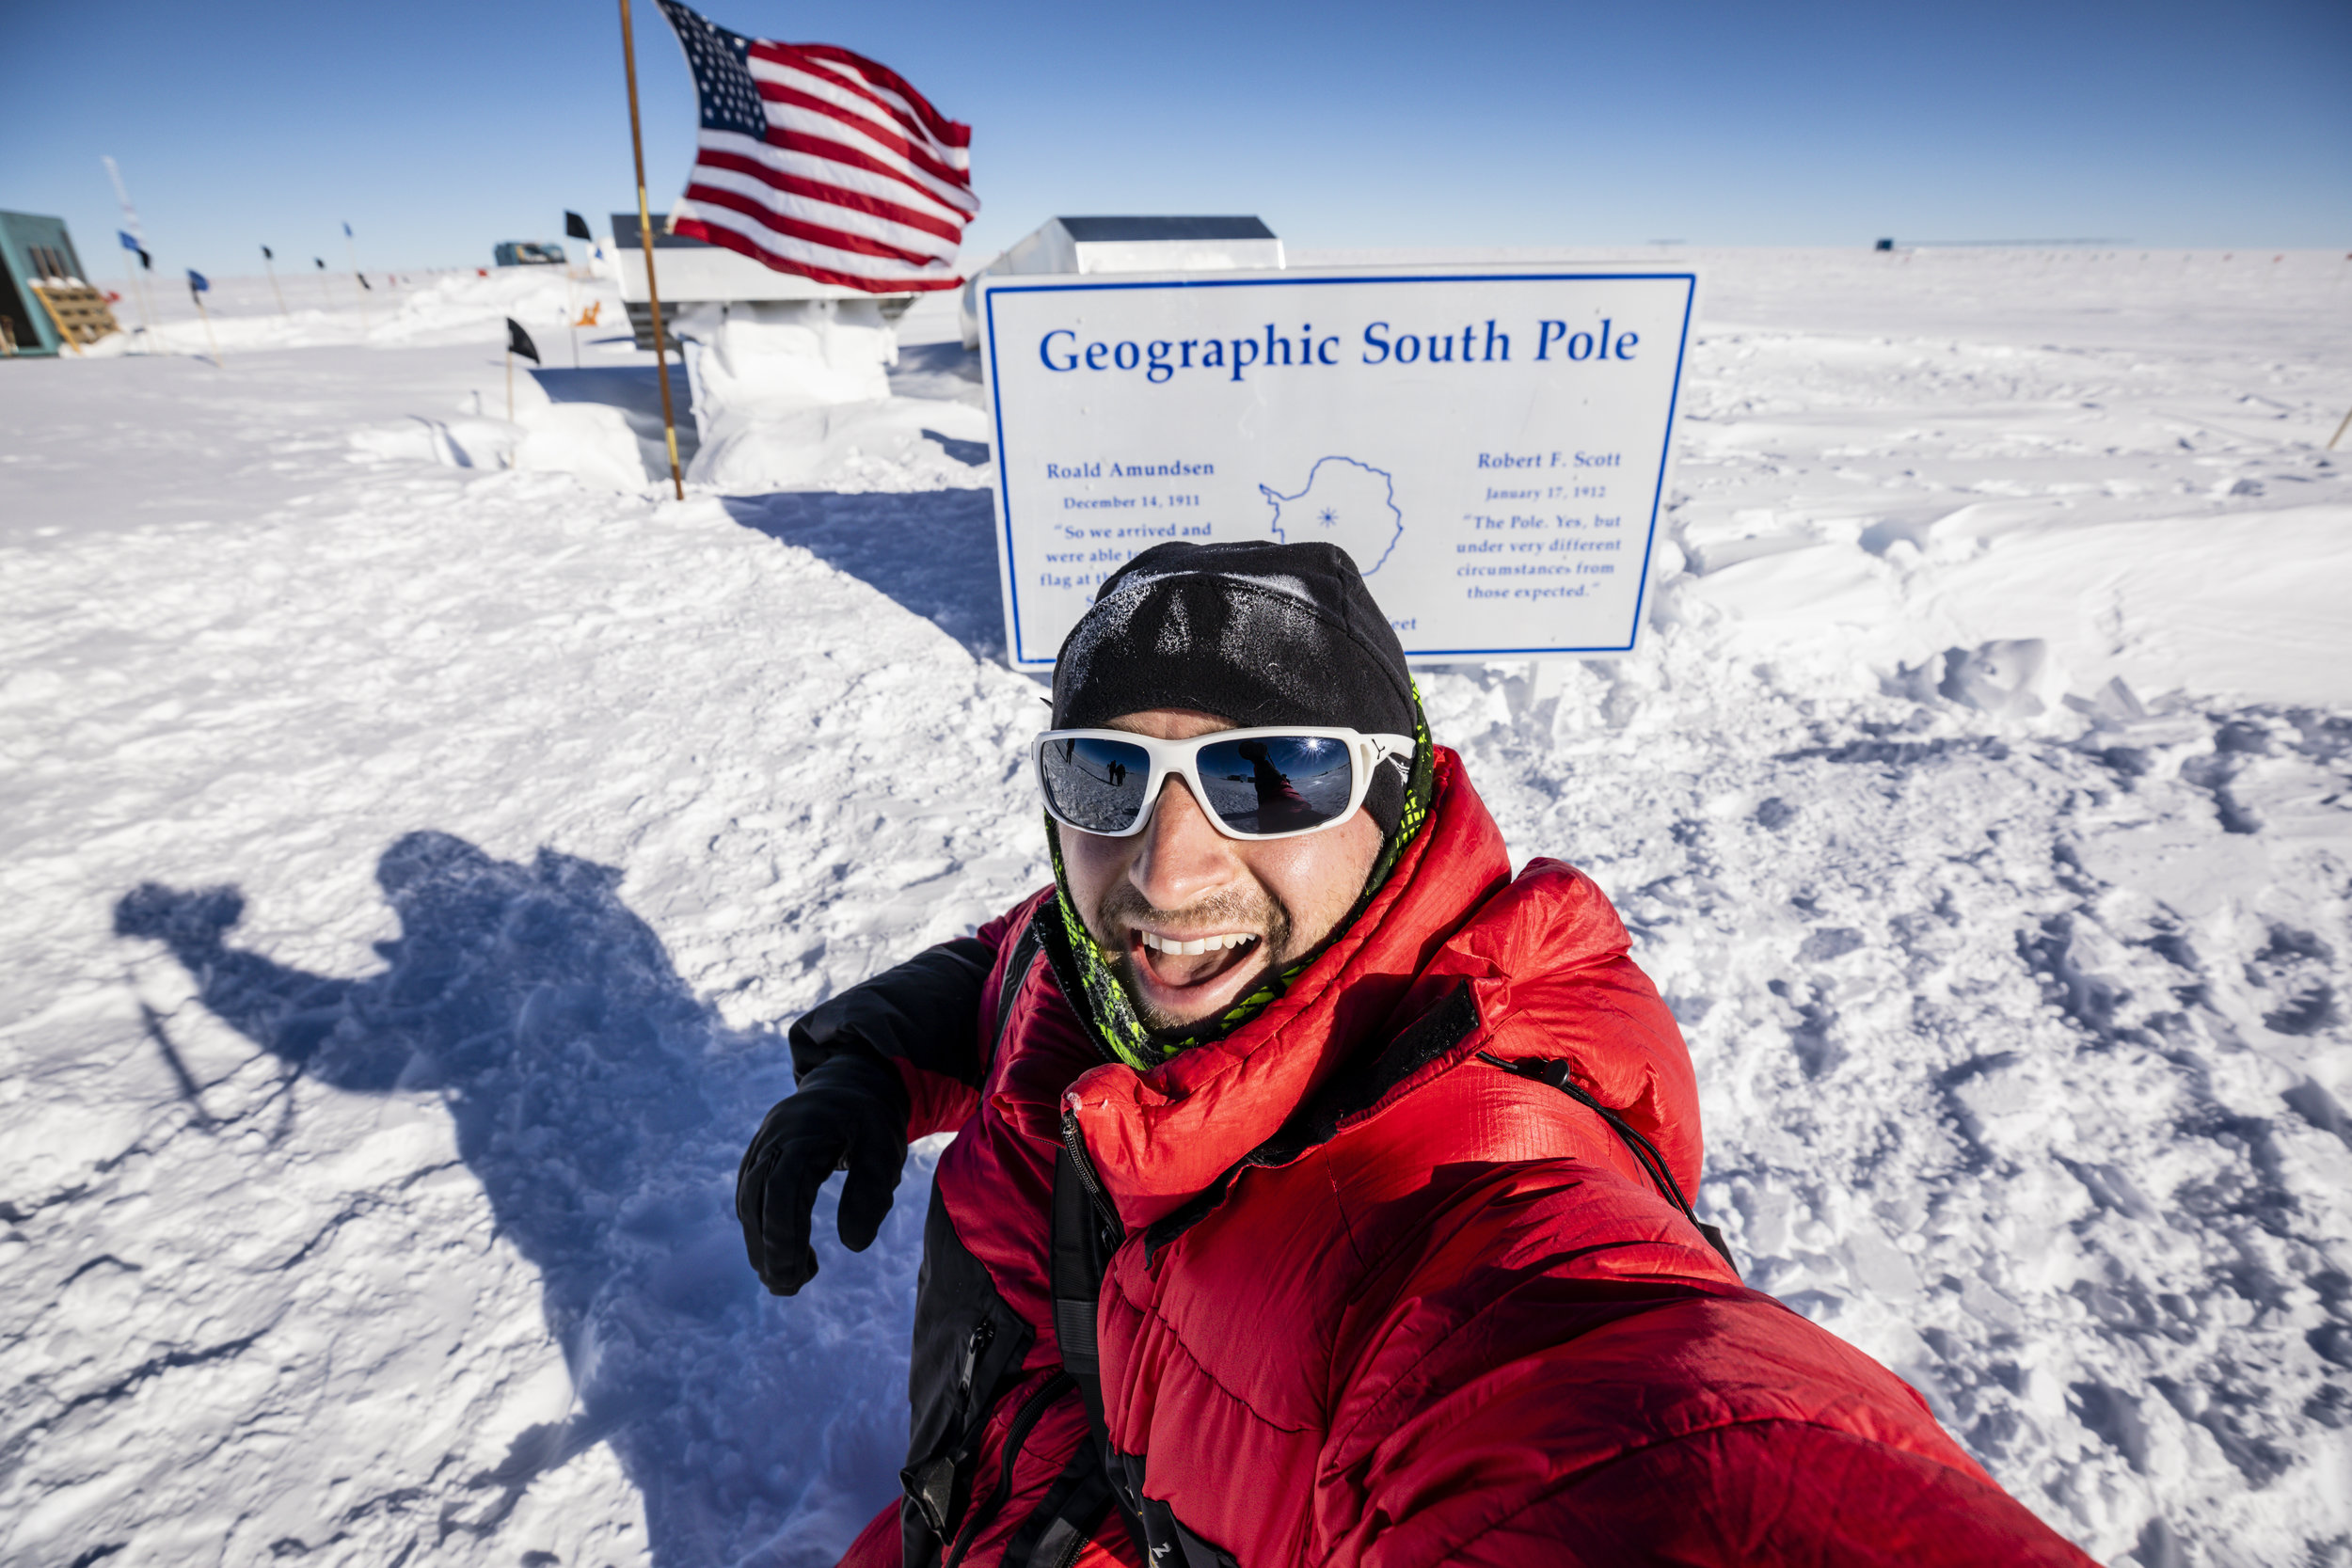 AK_IE_South Pole_Day_6_South Pole-1436.jpg